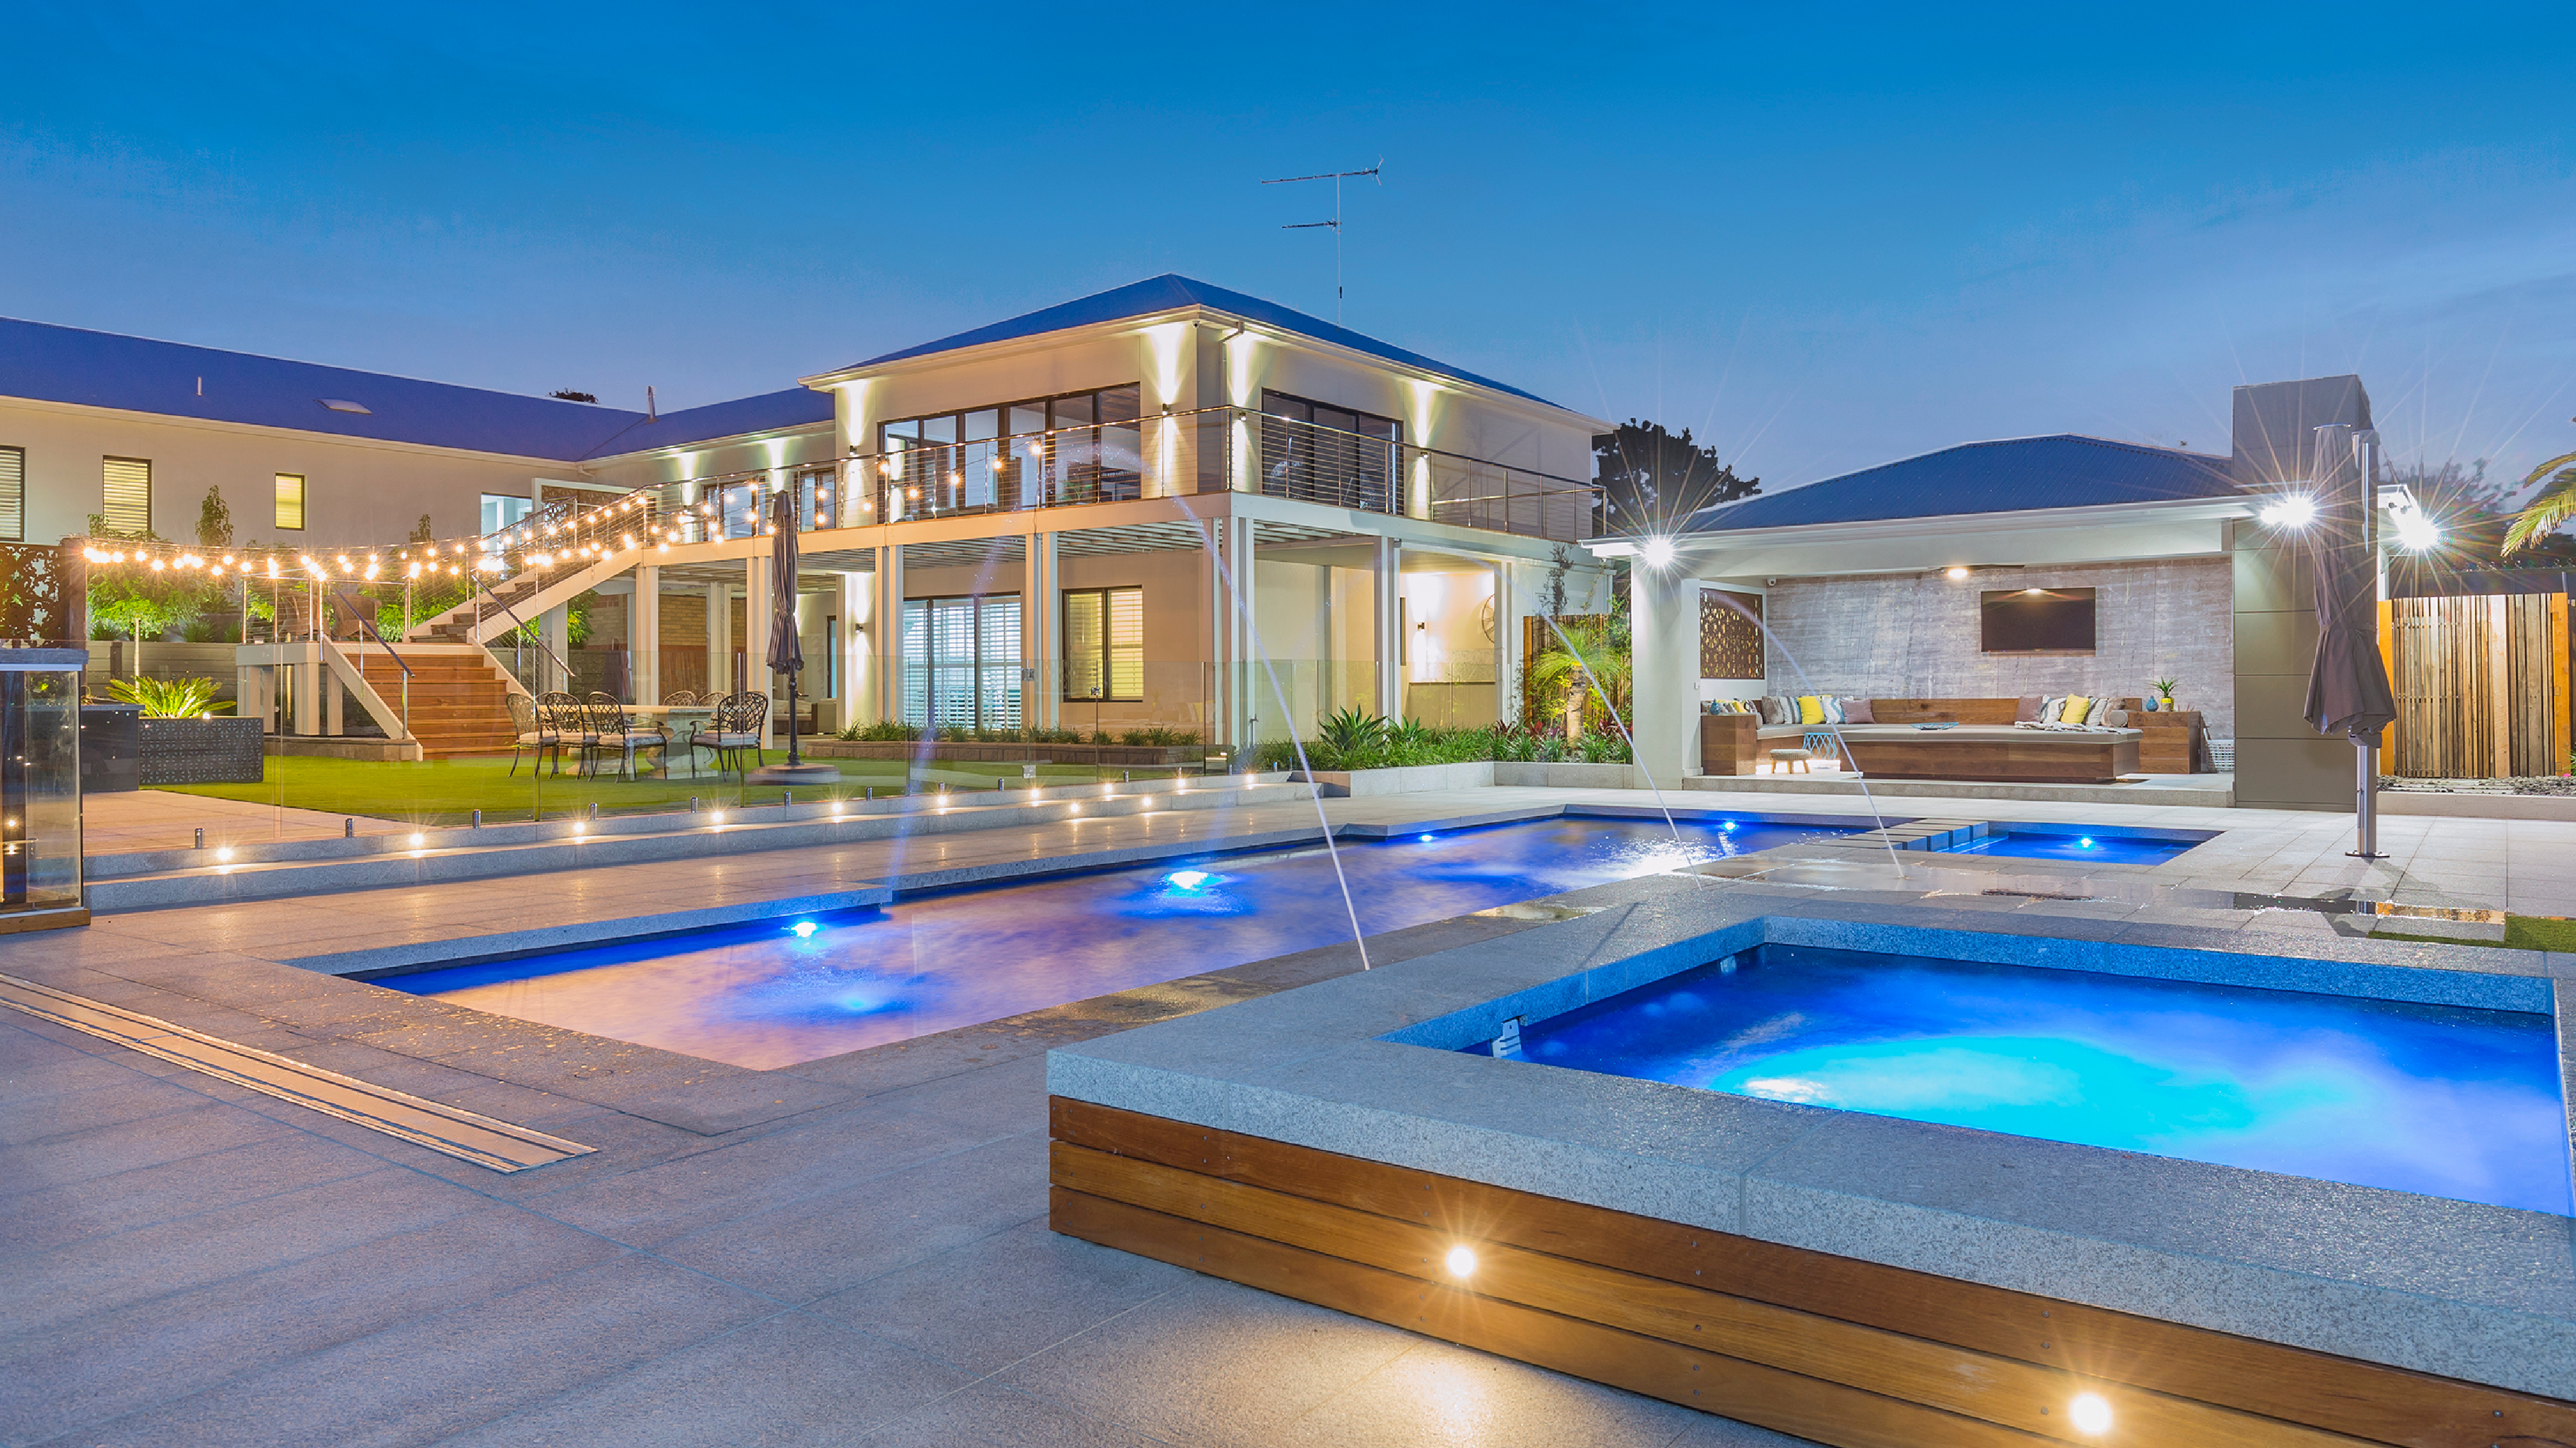 Narellan pools heads to US in parternship deal | Inside Franchise Business